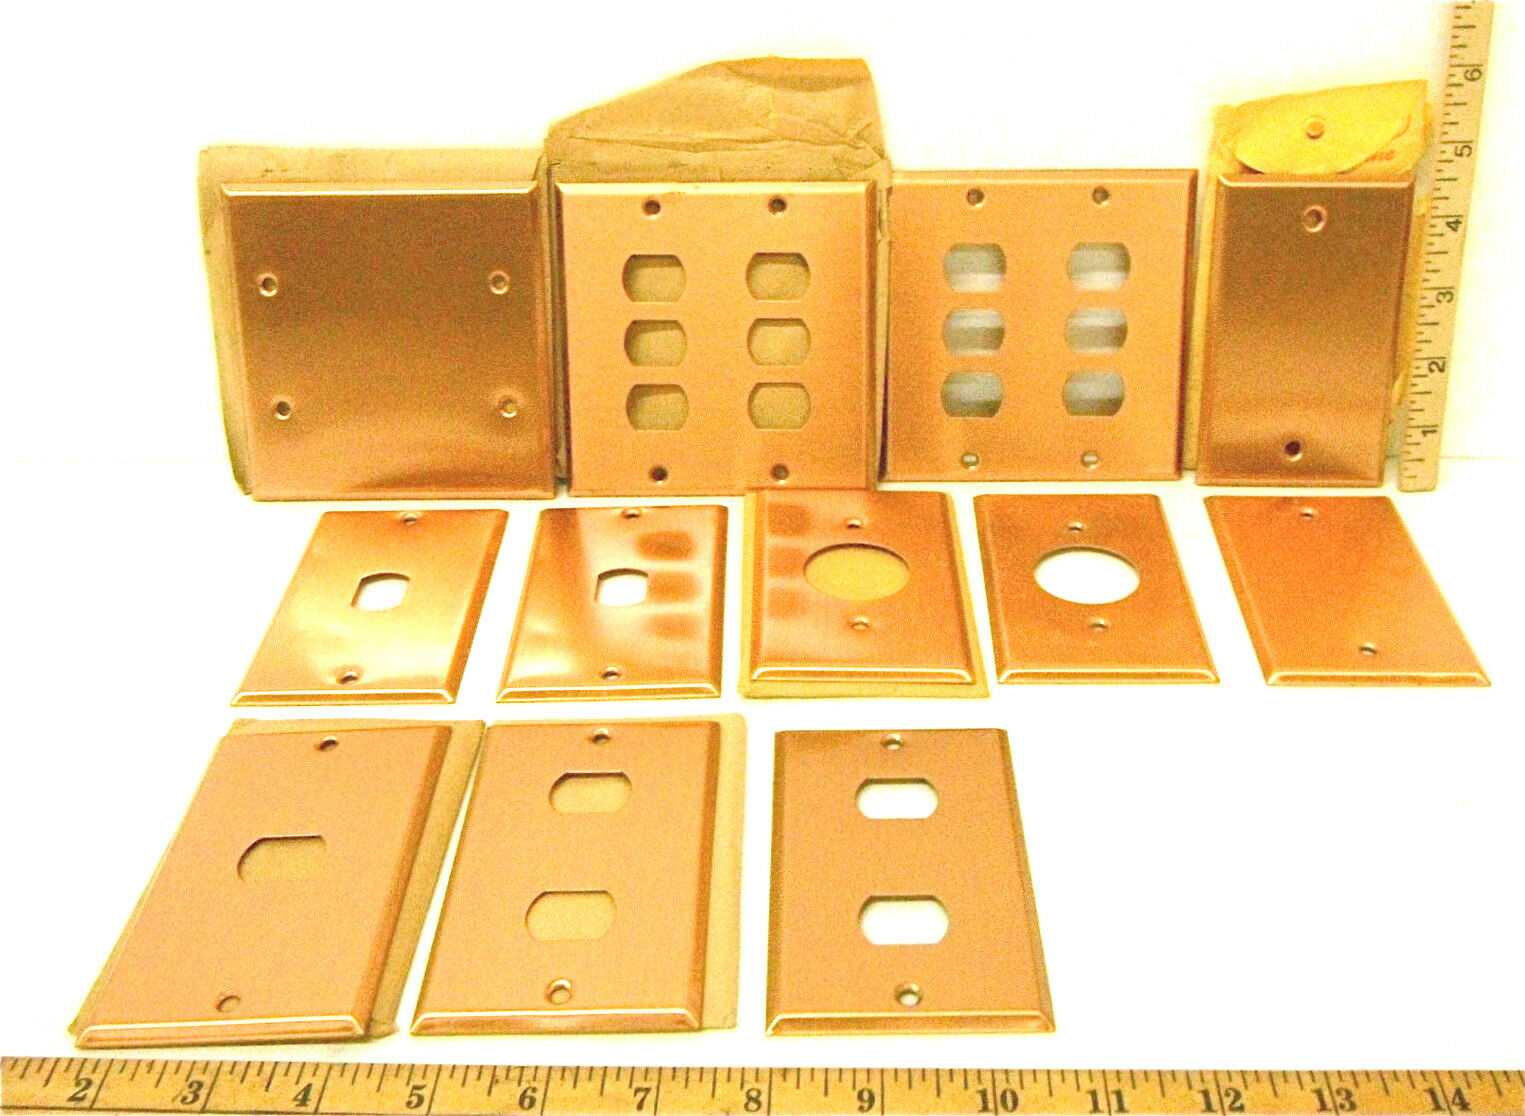 12 Heavy Duty Antique Smooth Copper Plate Metal Switch Covers Toggle Blank Wall